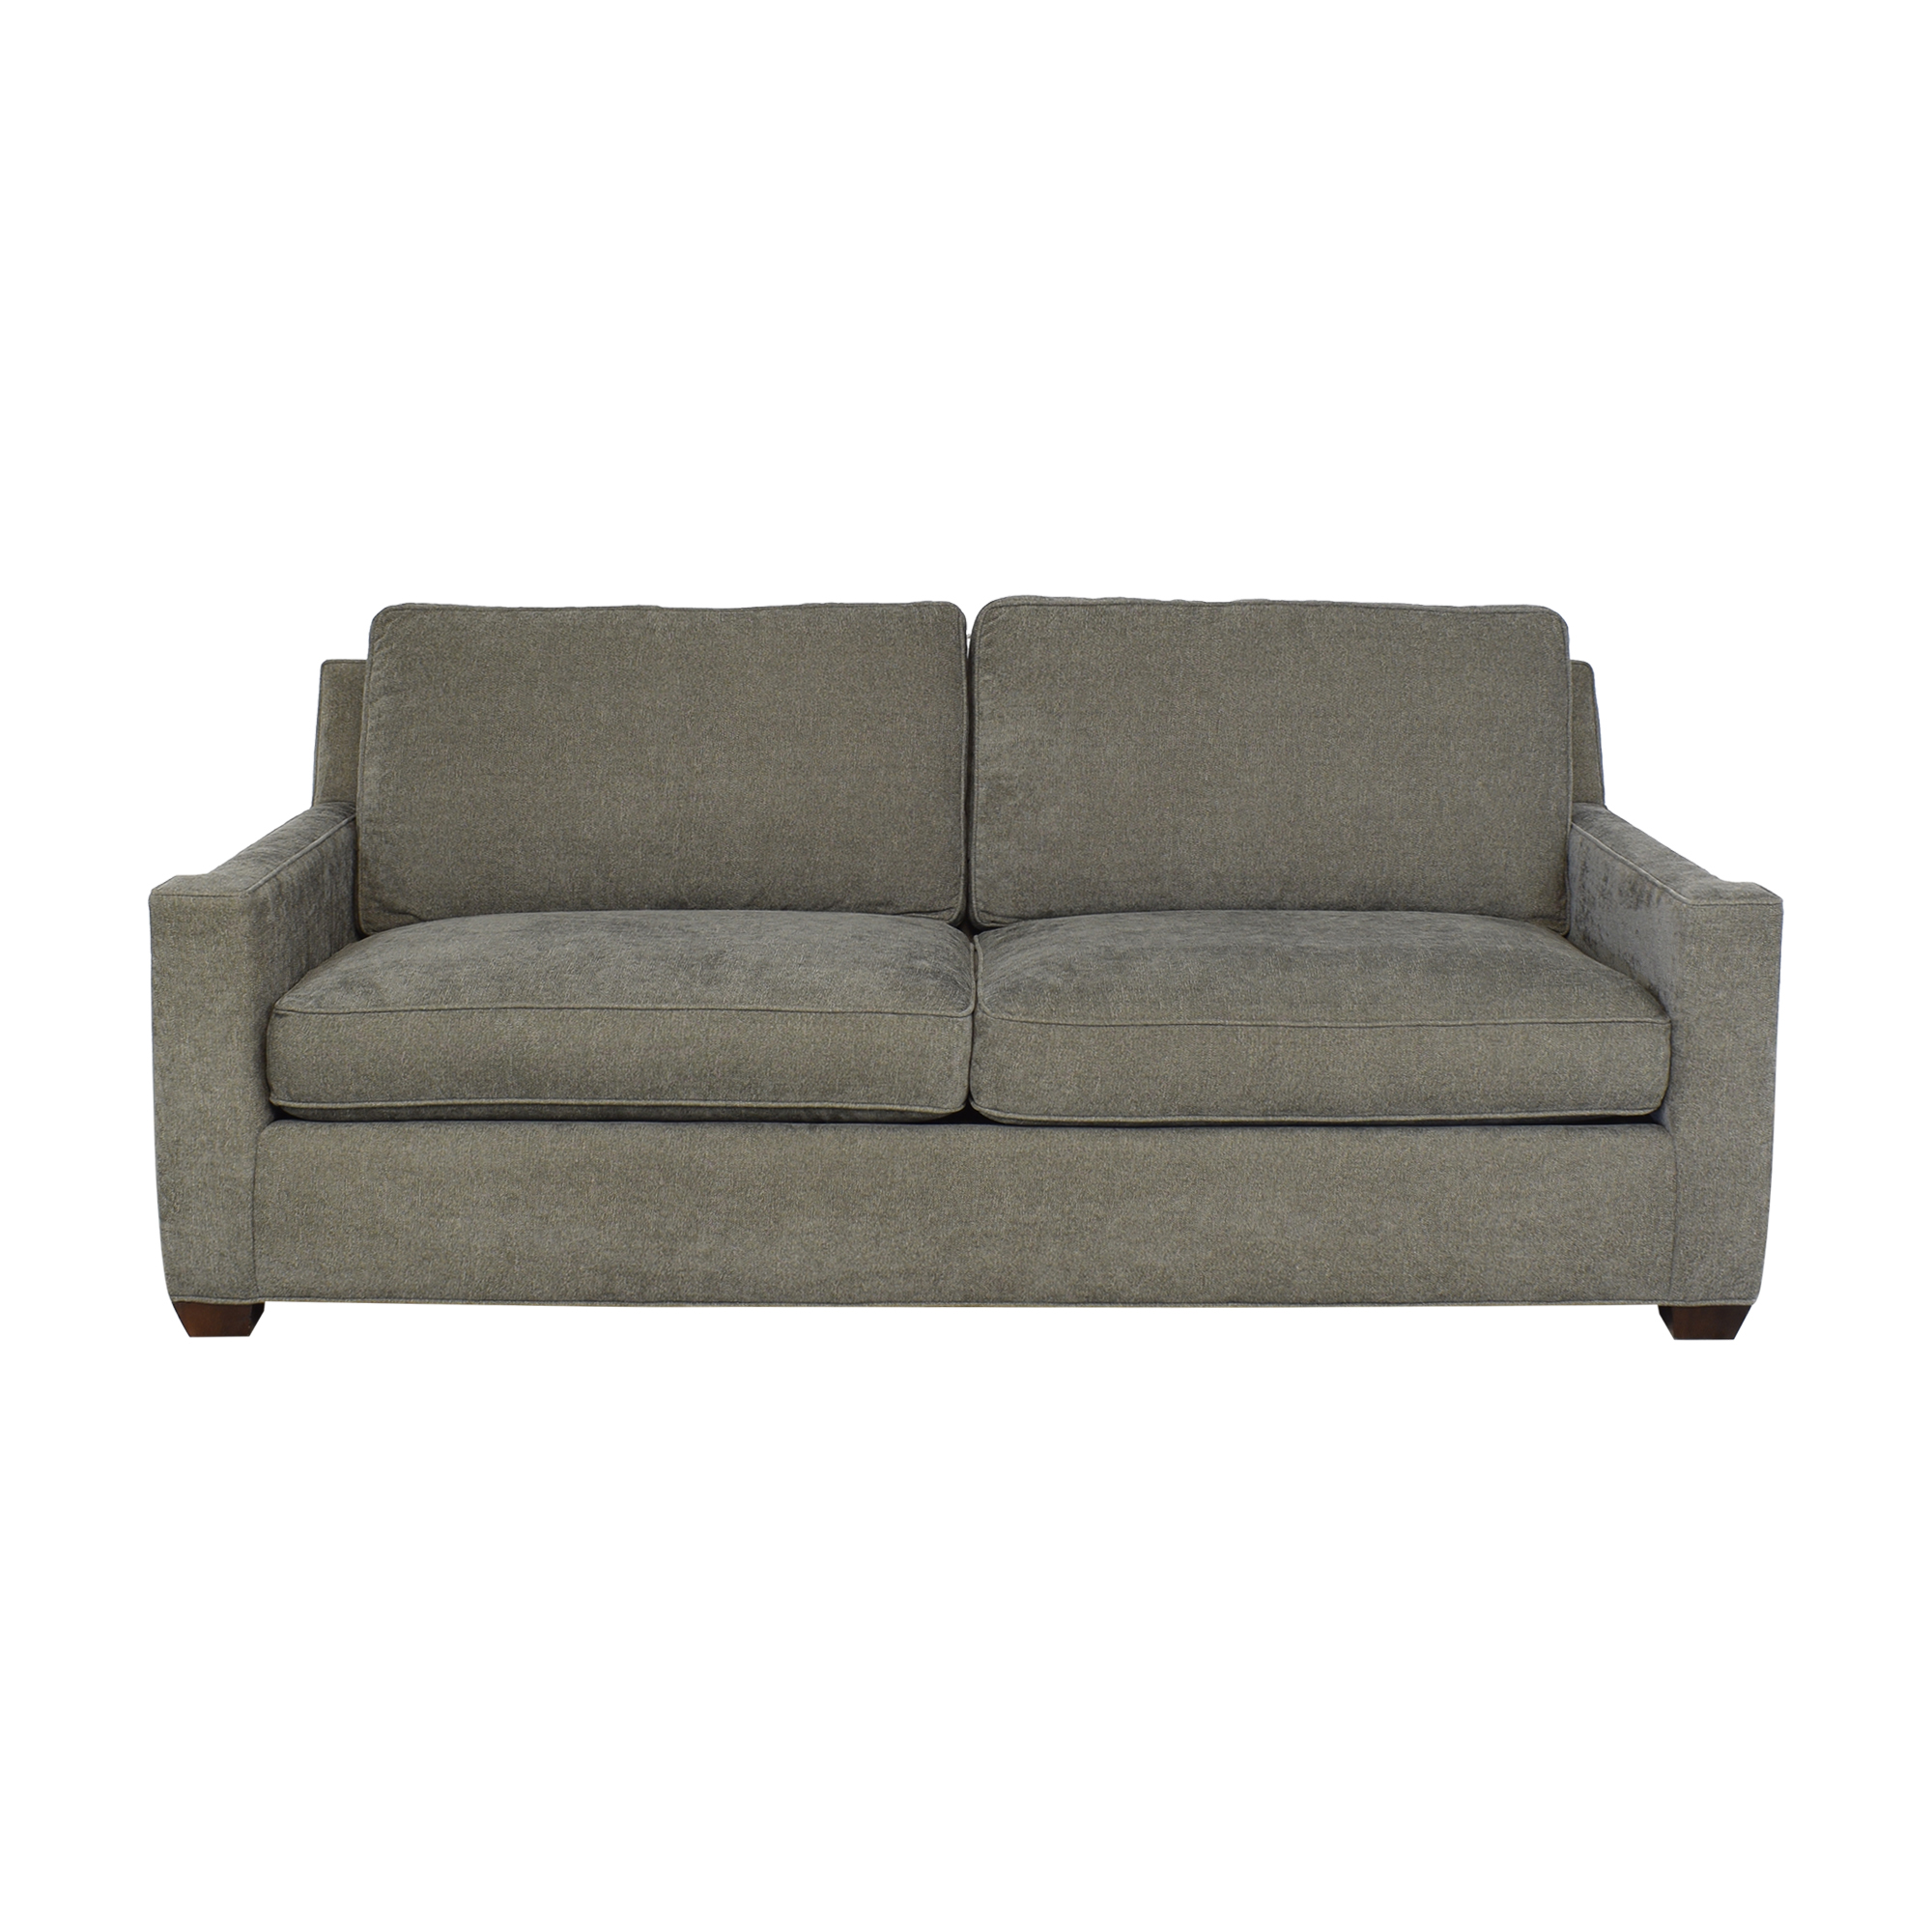 buy Century Furniture Colton Sofa Century Furniture Sofas